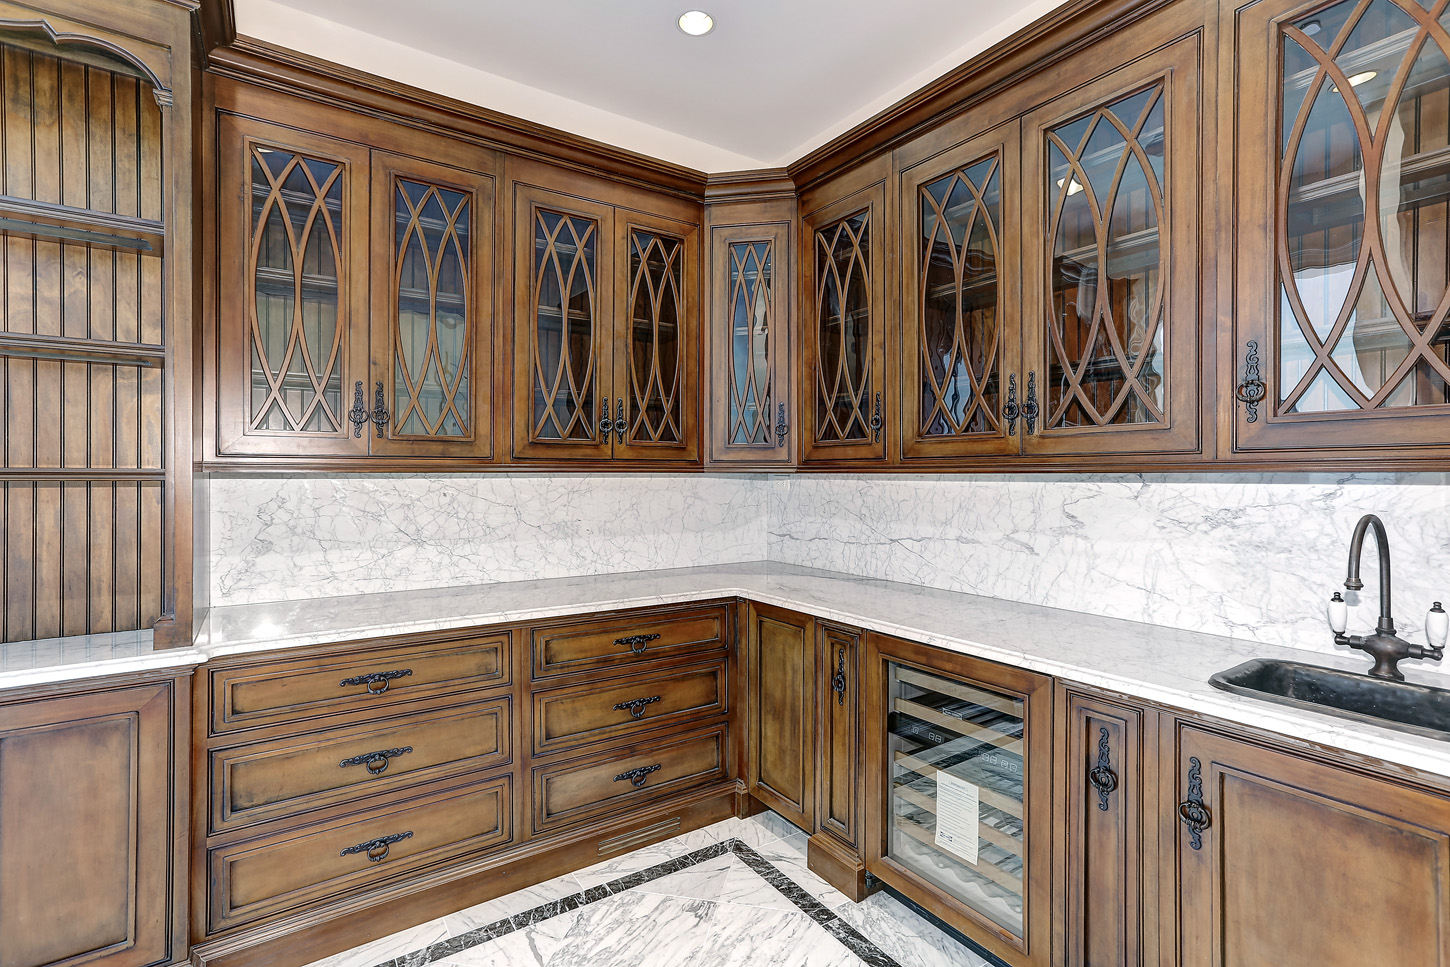 Butler's pantry in mansion designed by Niroo Construction